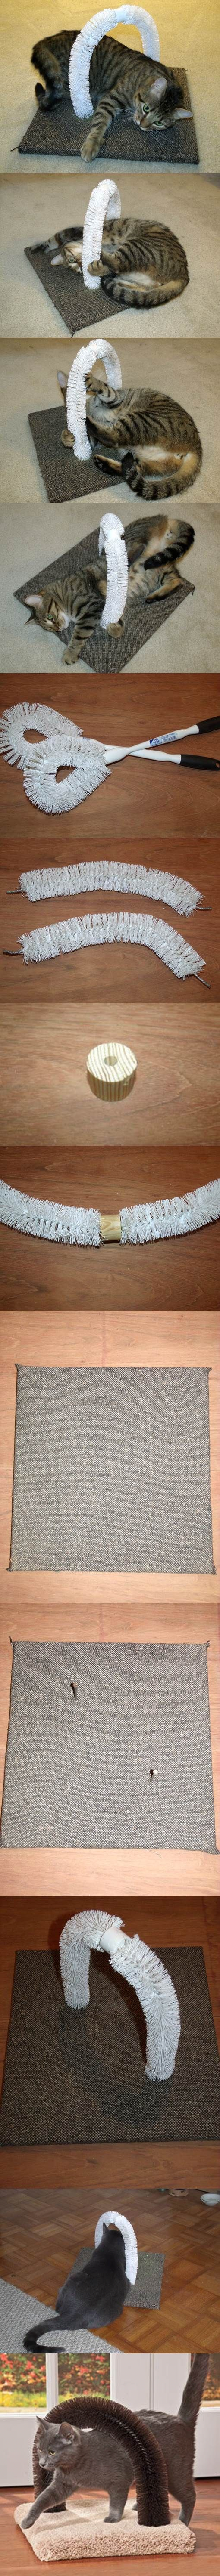 DIY Self-Petting Station for Cats 2